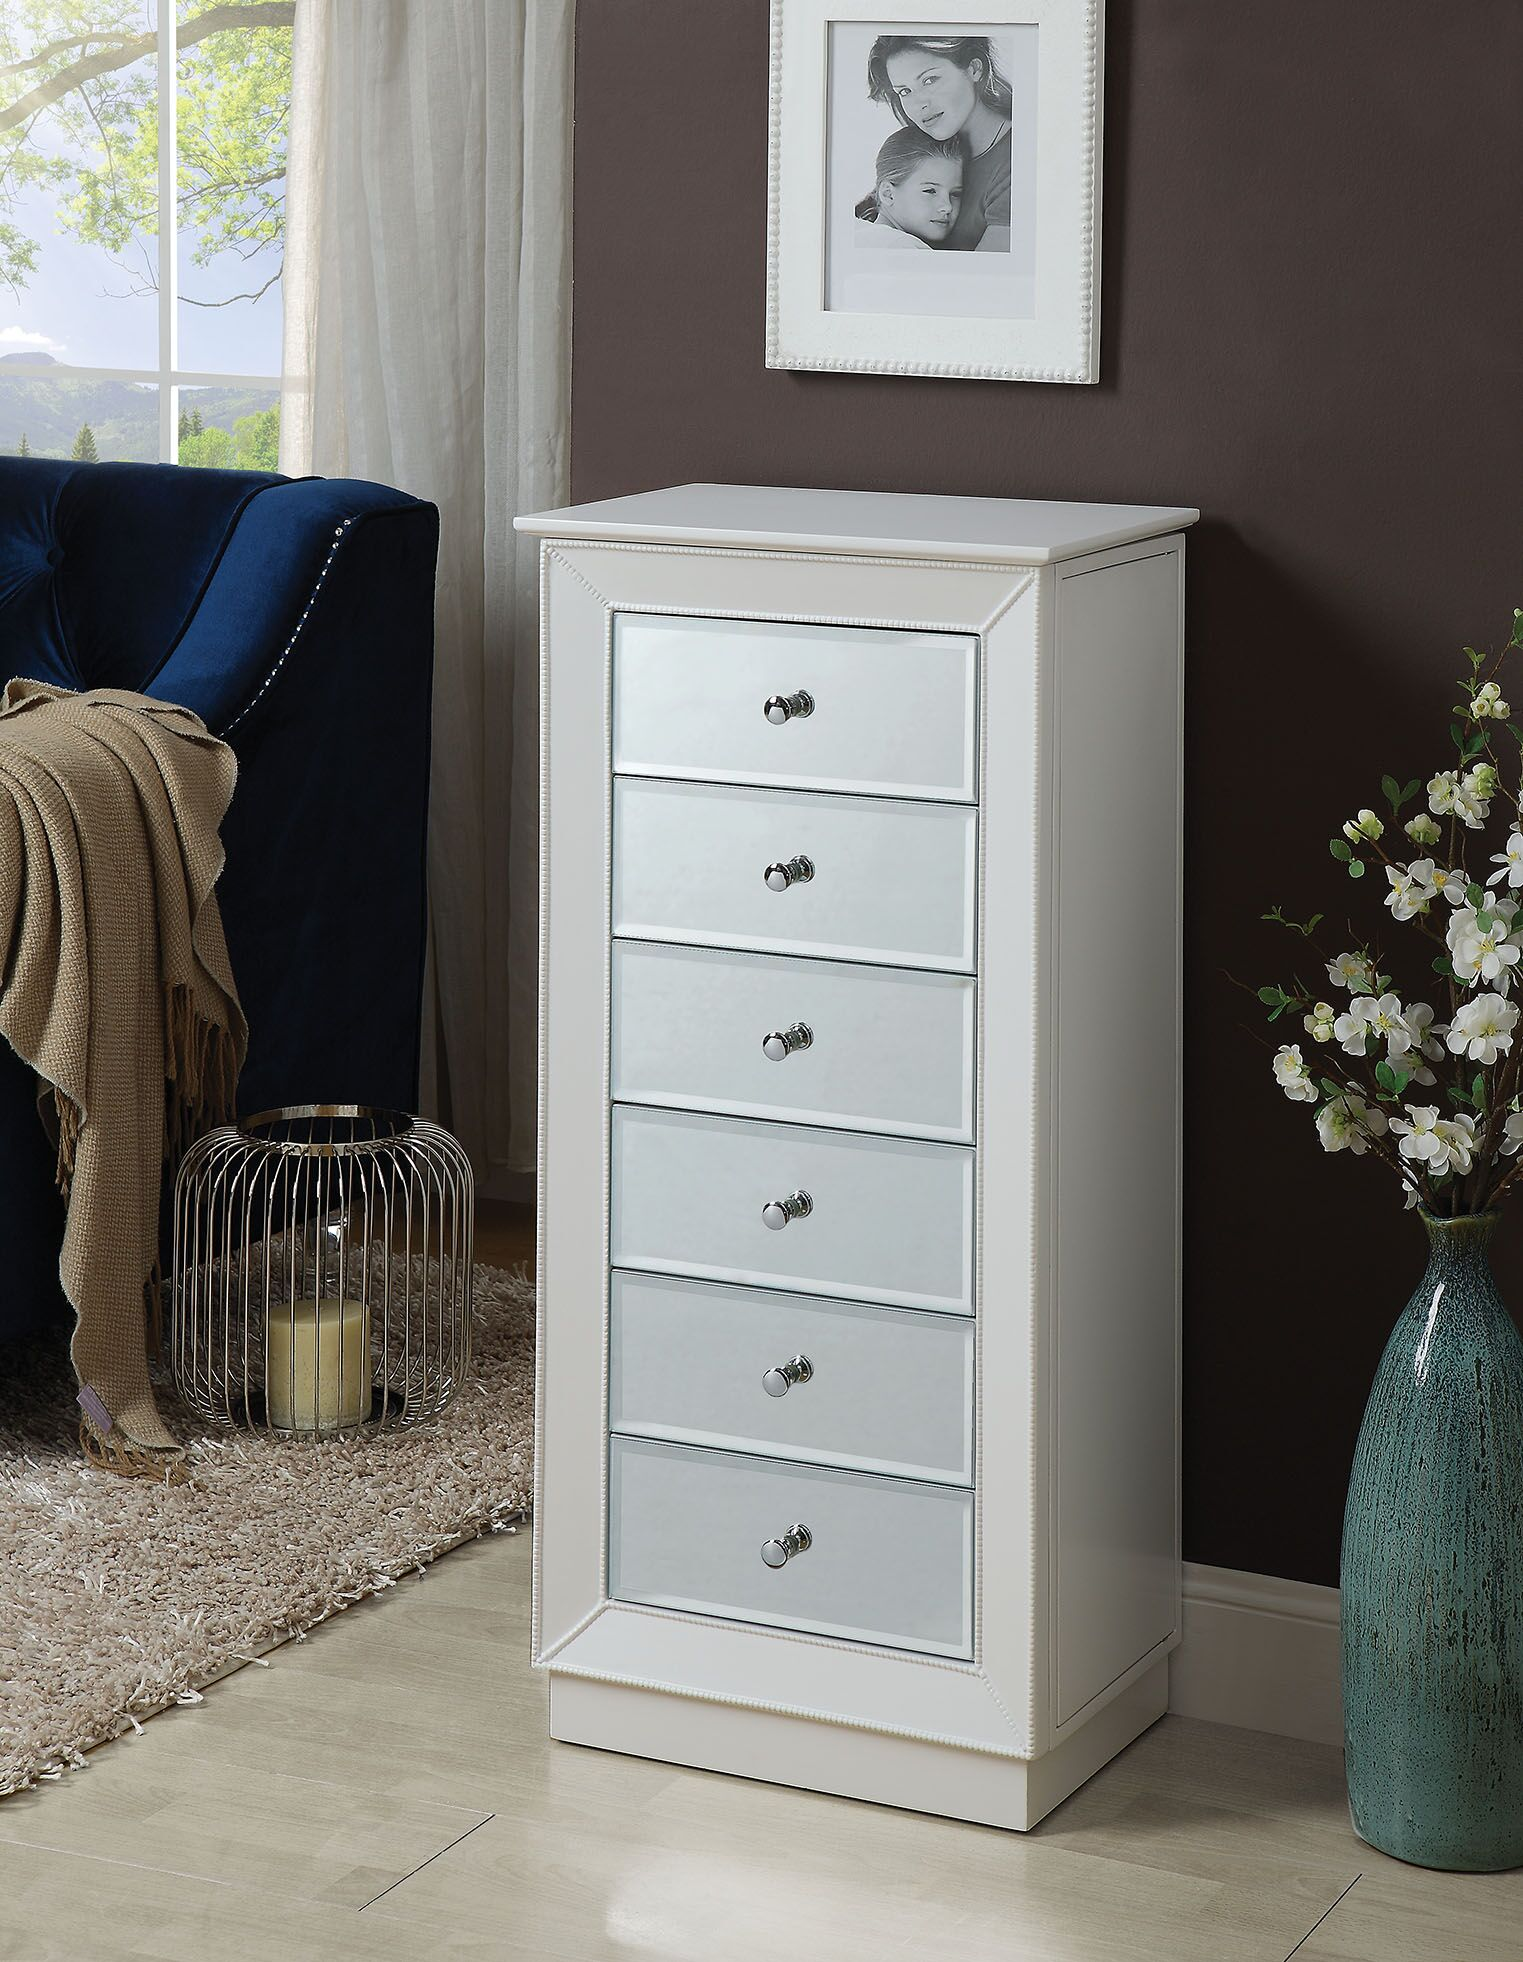 Talor Free Standing Jewelry Armoire with Mirror Color: White